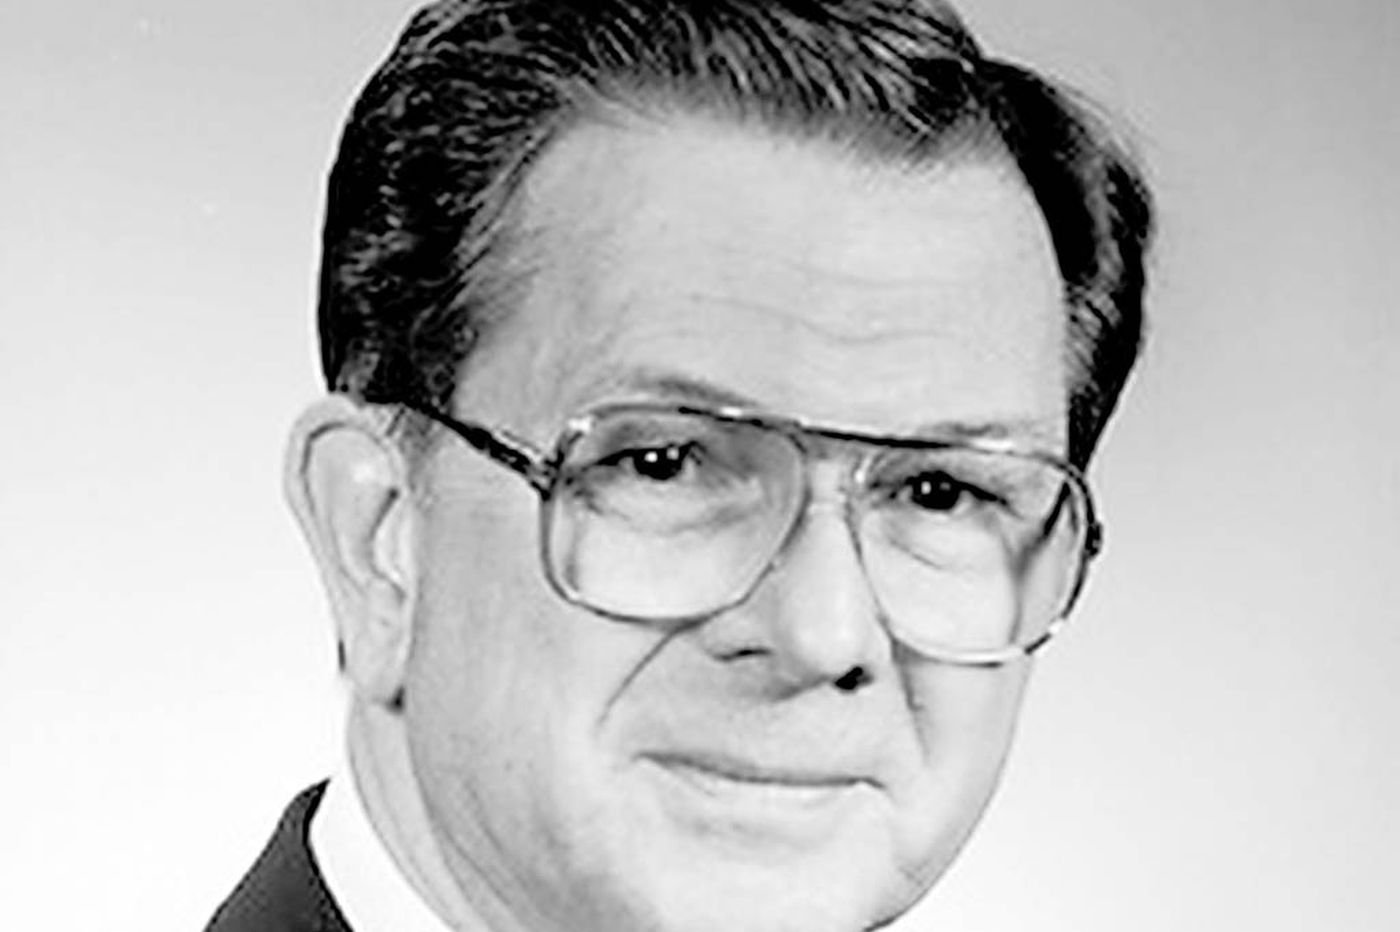 Gerald L. Gump, 88, former Barrington official